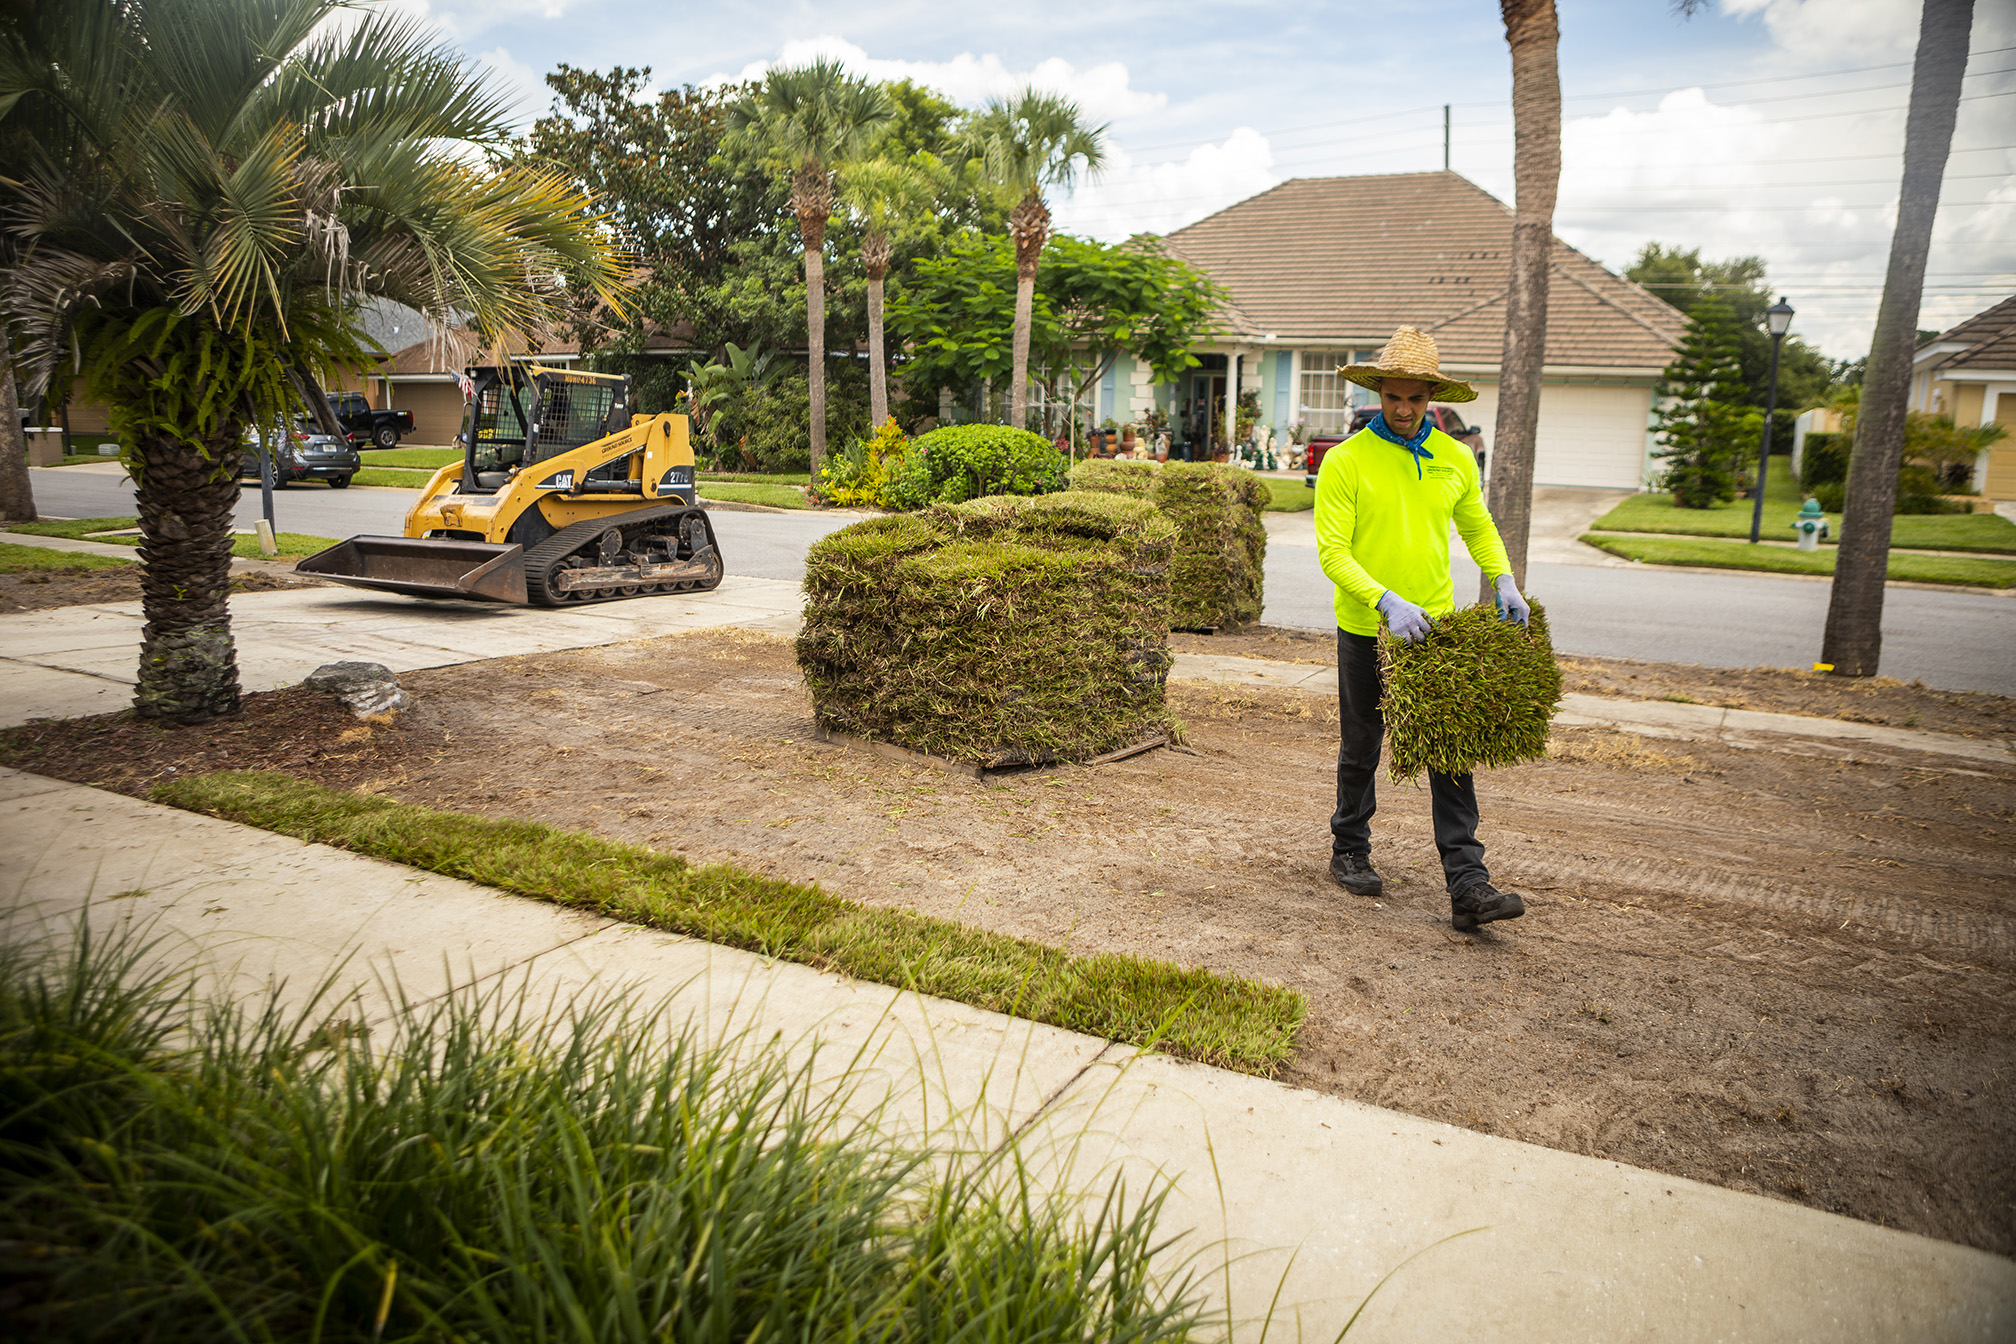 sod being delivered and installed at Orlando, FL home